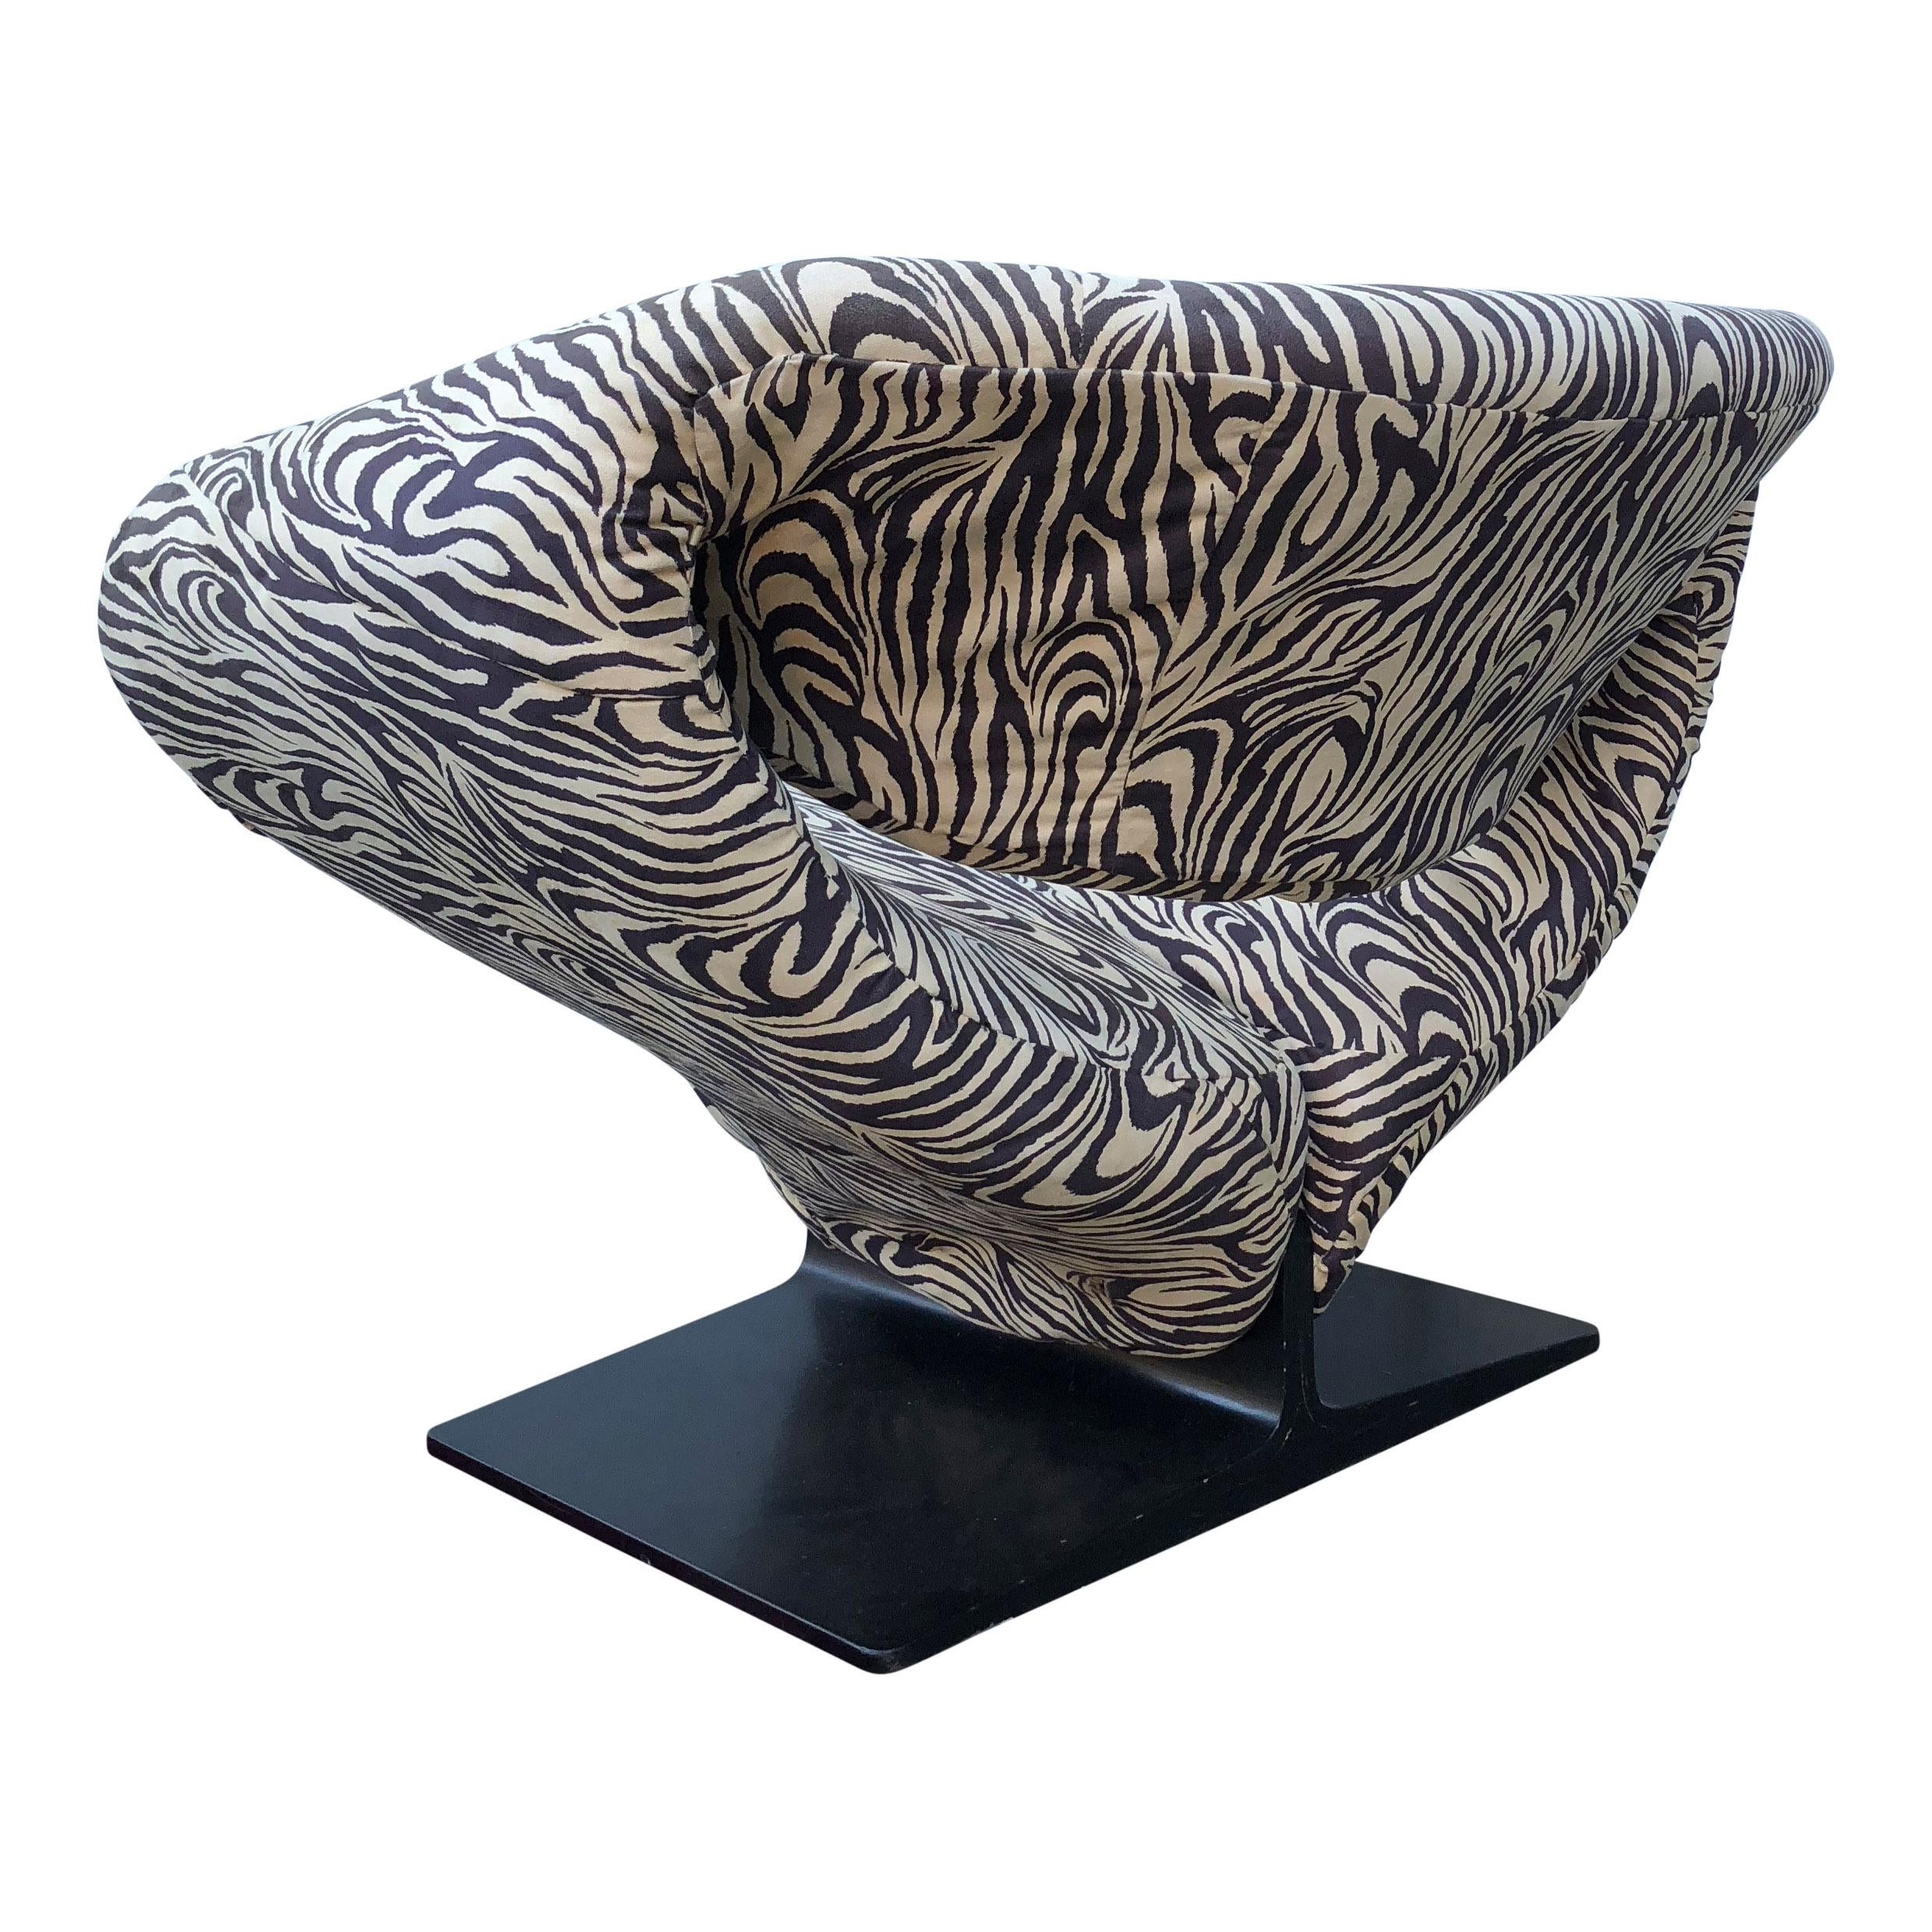 Pierre Paulin For Artifort Ribbon Chair   Image 6 Of 9 Gallery